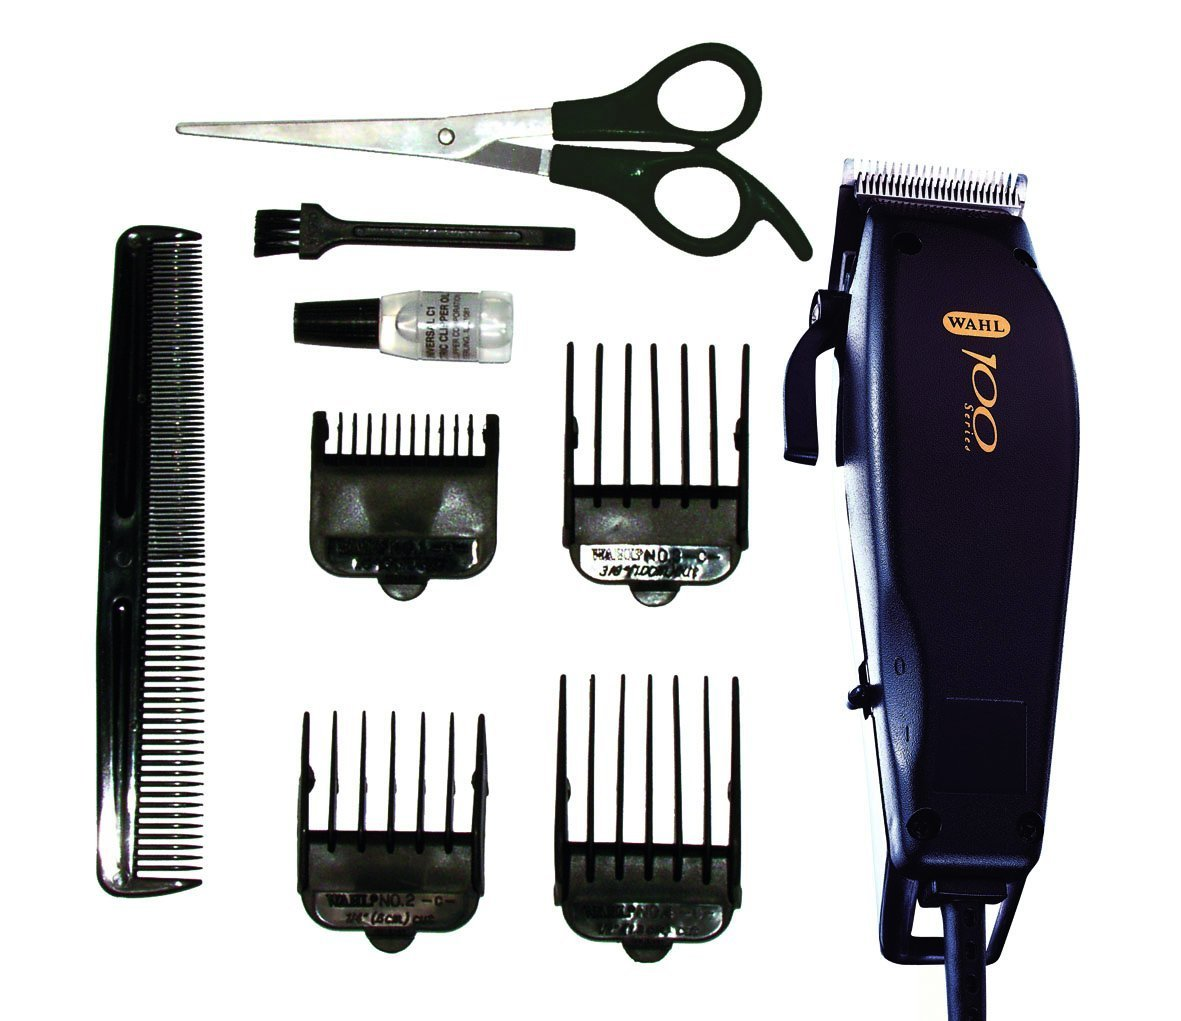 Wahl Nation 100 Series 10-Piece Hair Cutting/Shaving/Grooming/Styling Kit